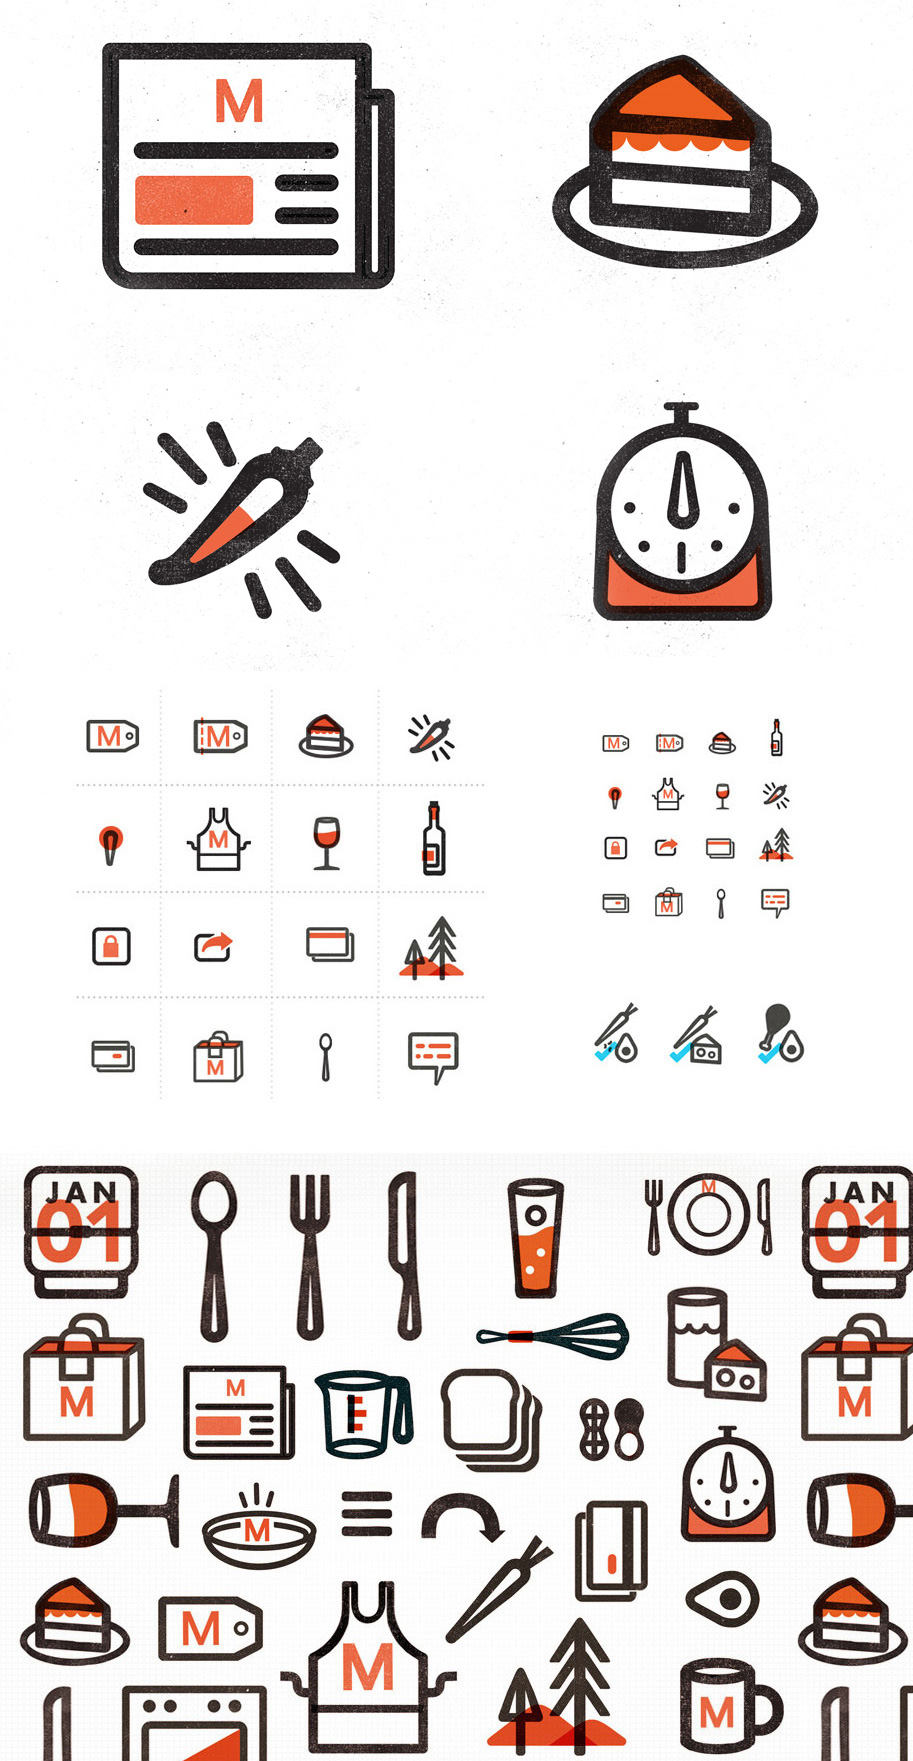 Lovely icons for the new identity for Munchery. See more on Brand New.